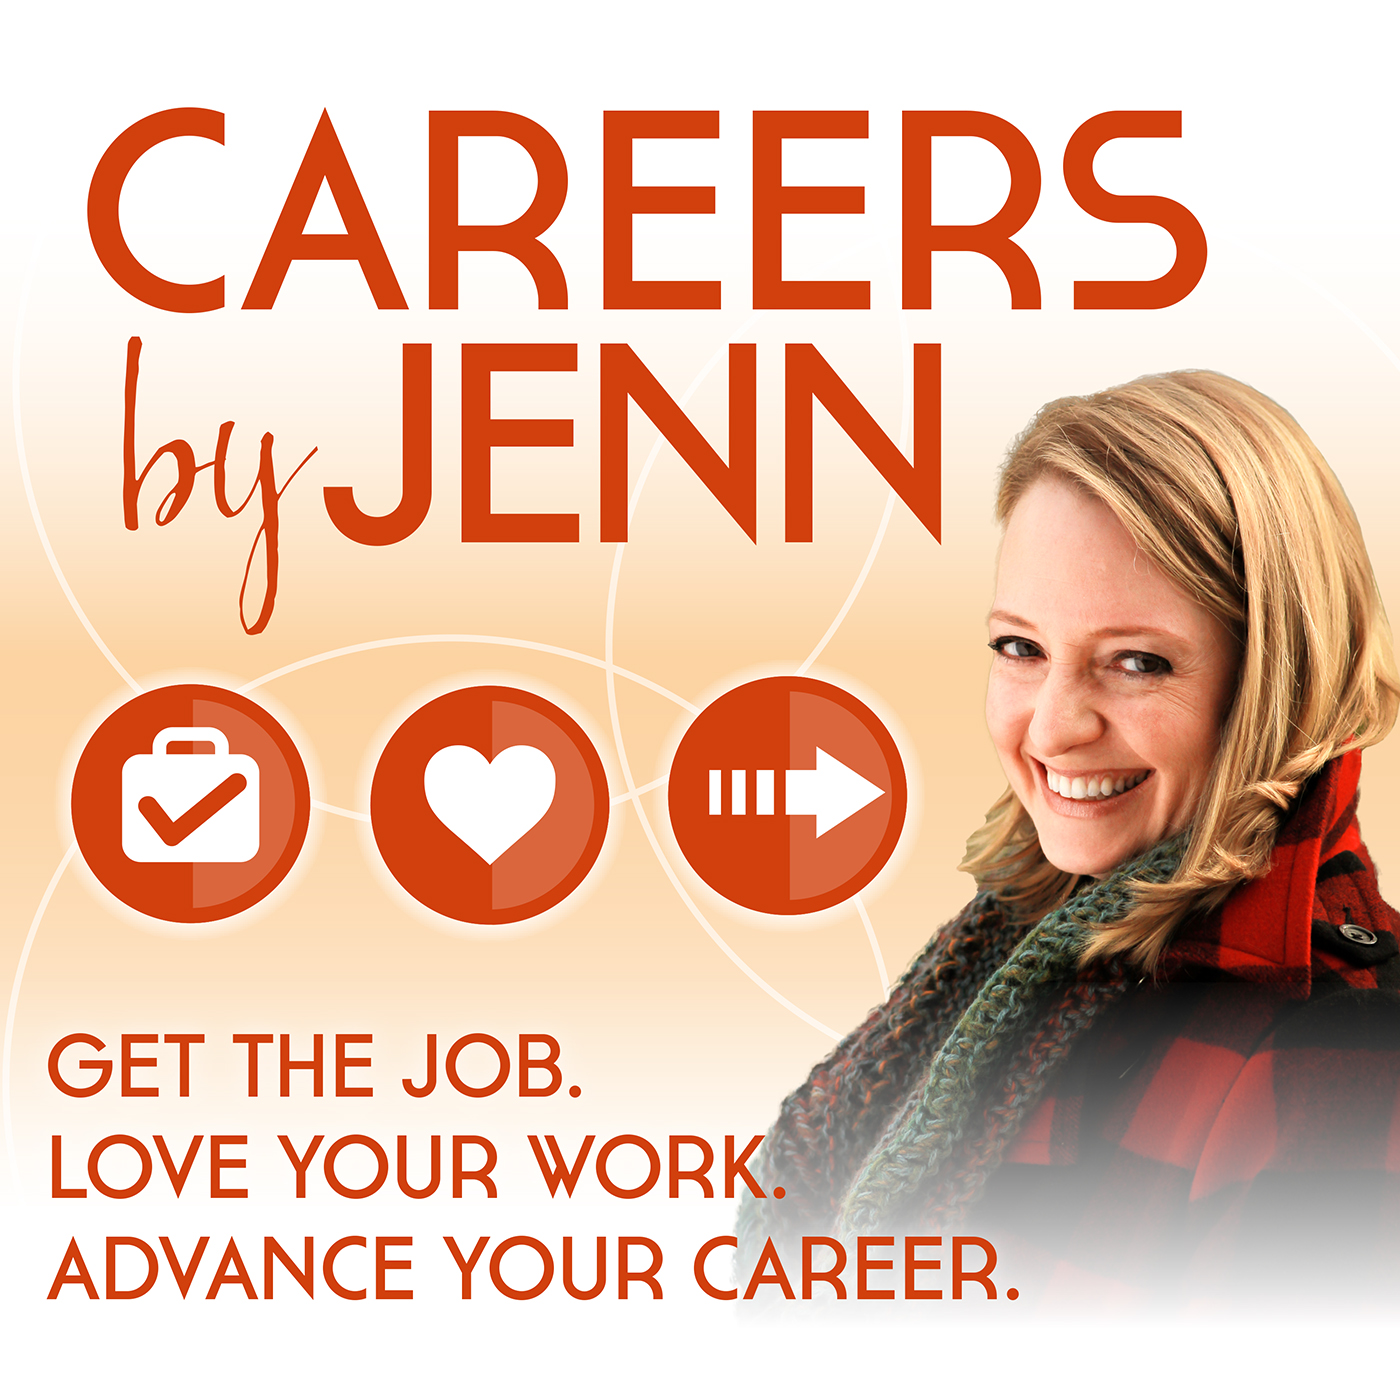 Careers by Jenn  Podcast: Get the Job, Love Your Work, Advance Your Career show art